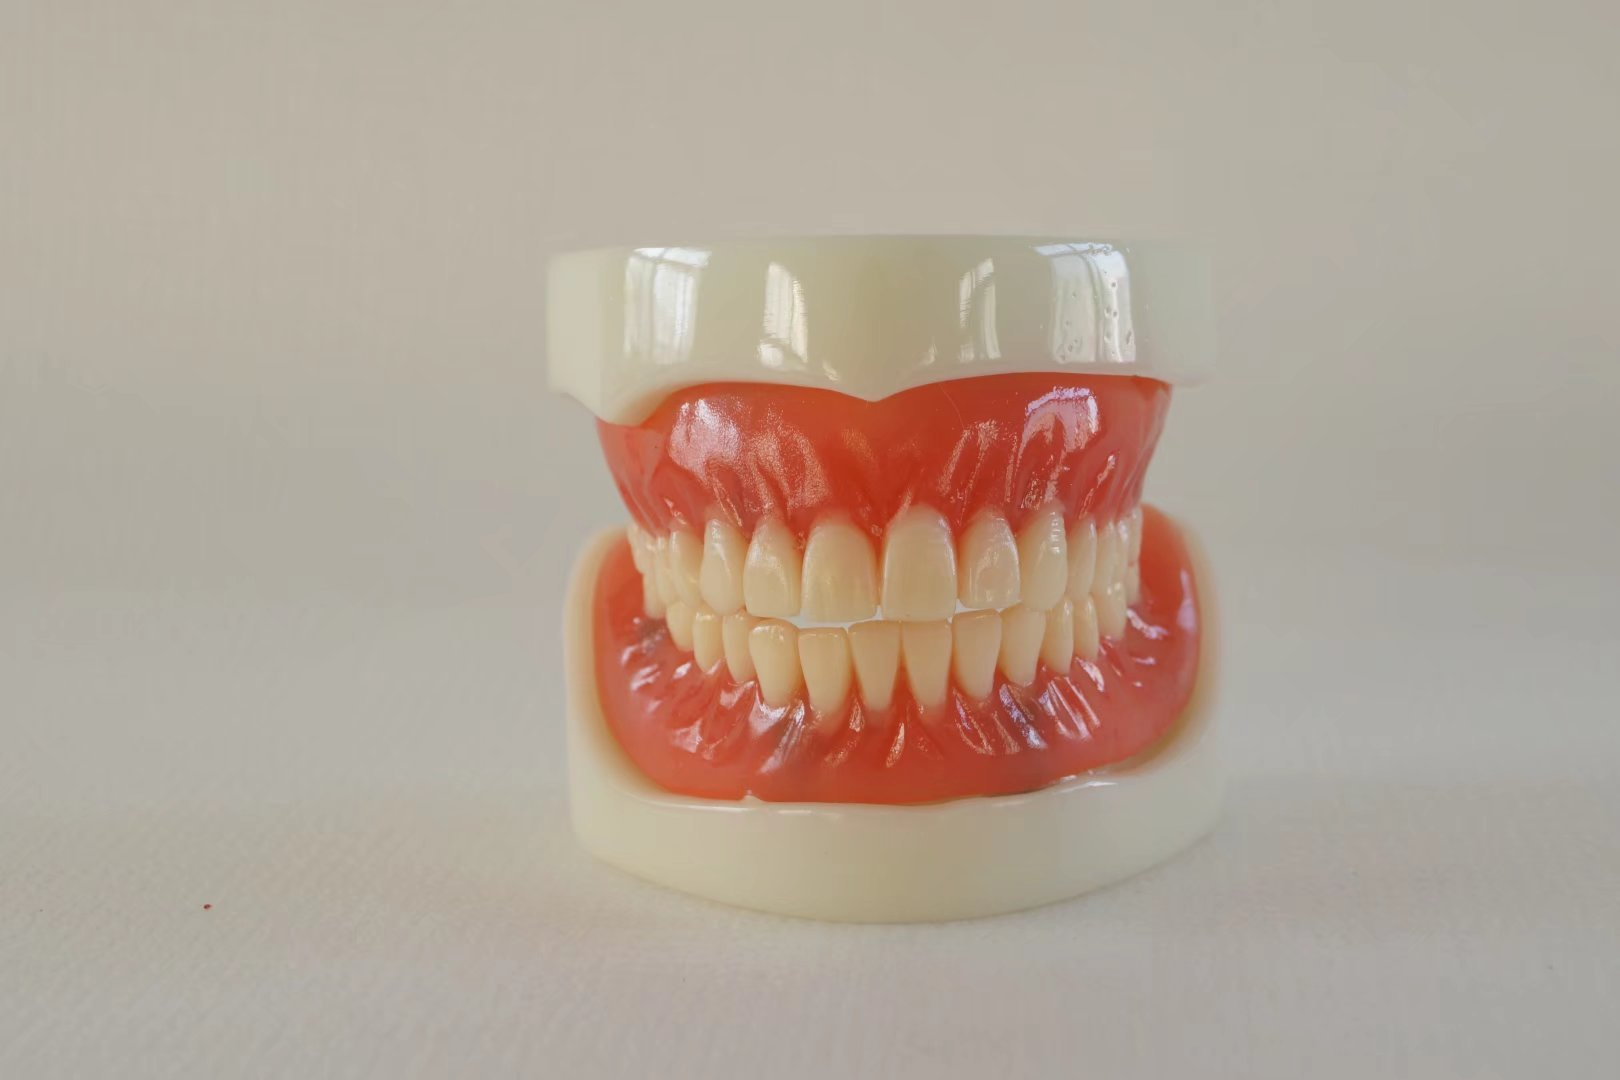 S&D Dental Stomatological Scientific and Educational Moulds Teaching Demonstration Implant Model Implant Model with Full Denture